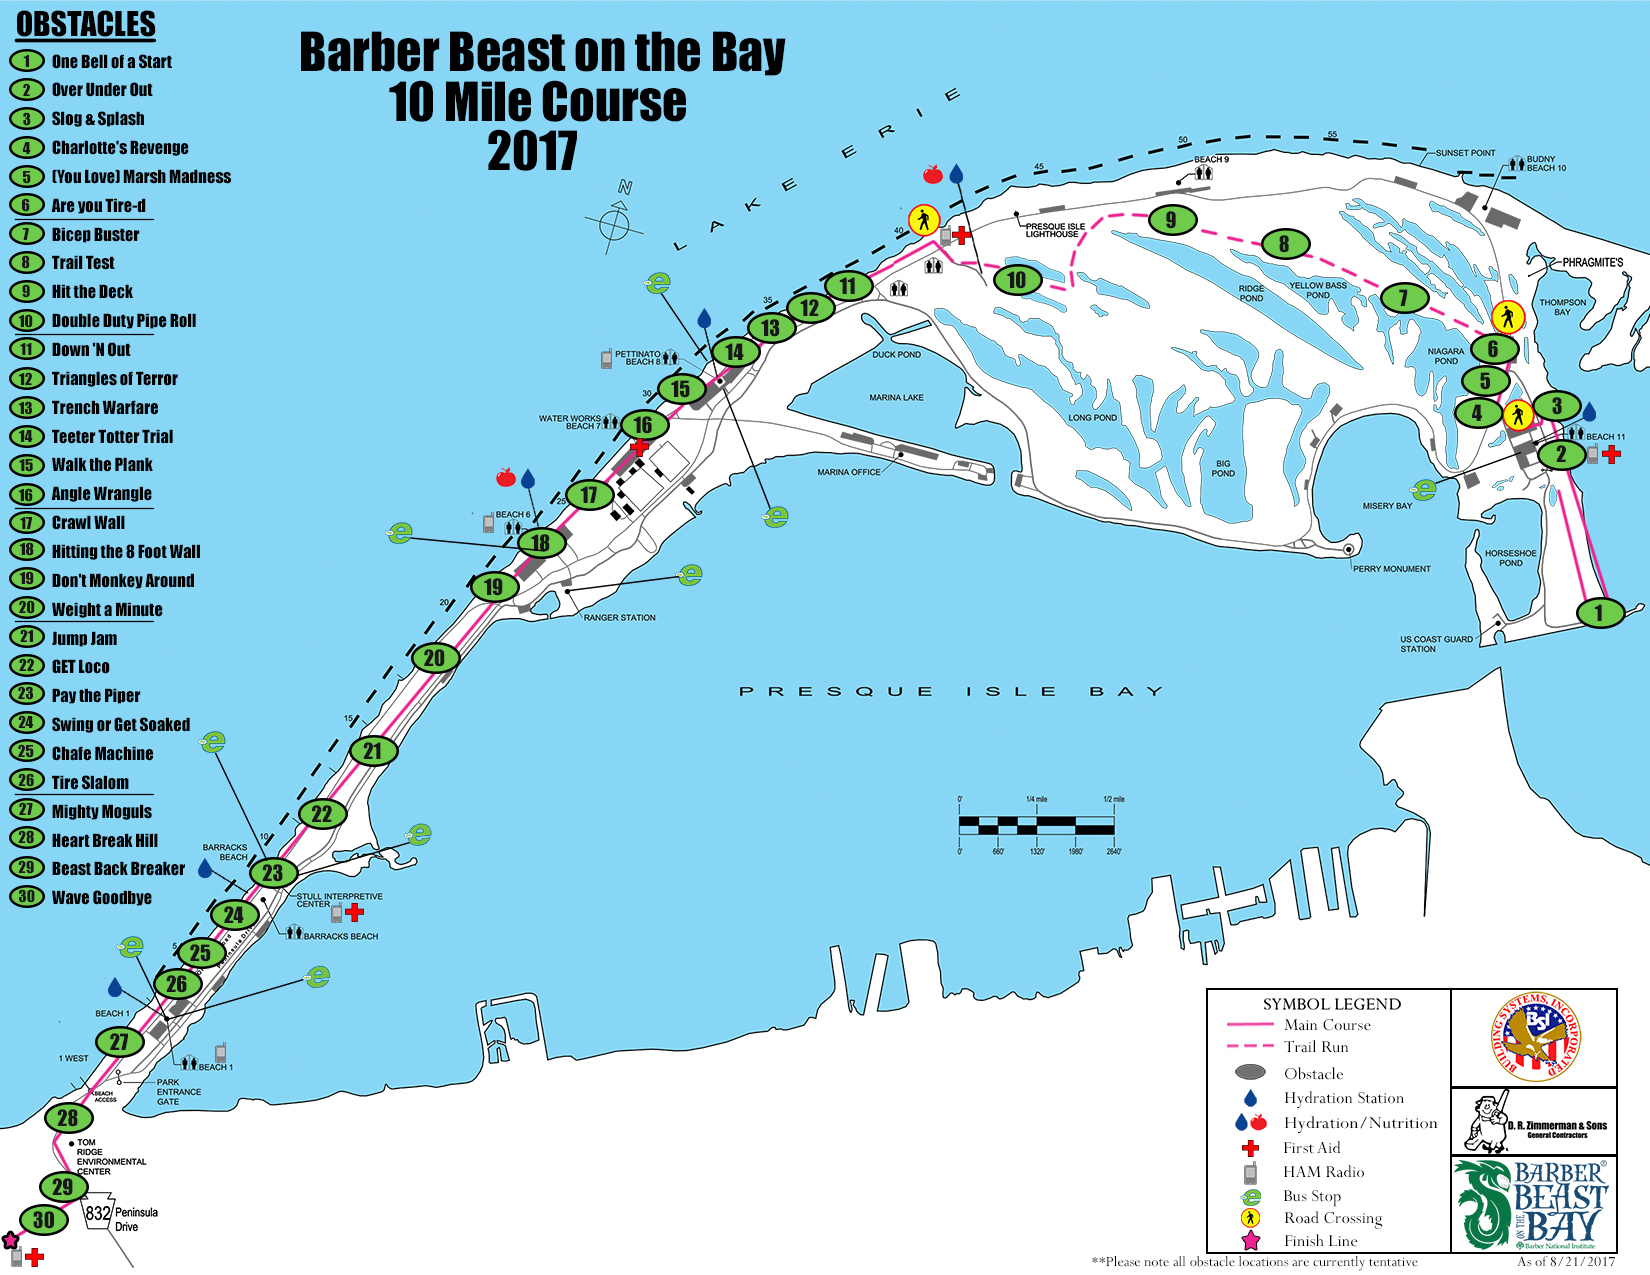 2017 Barber Beast on the Bay 10 Mile Course Map